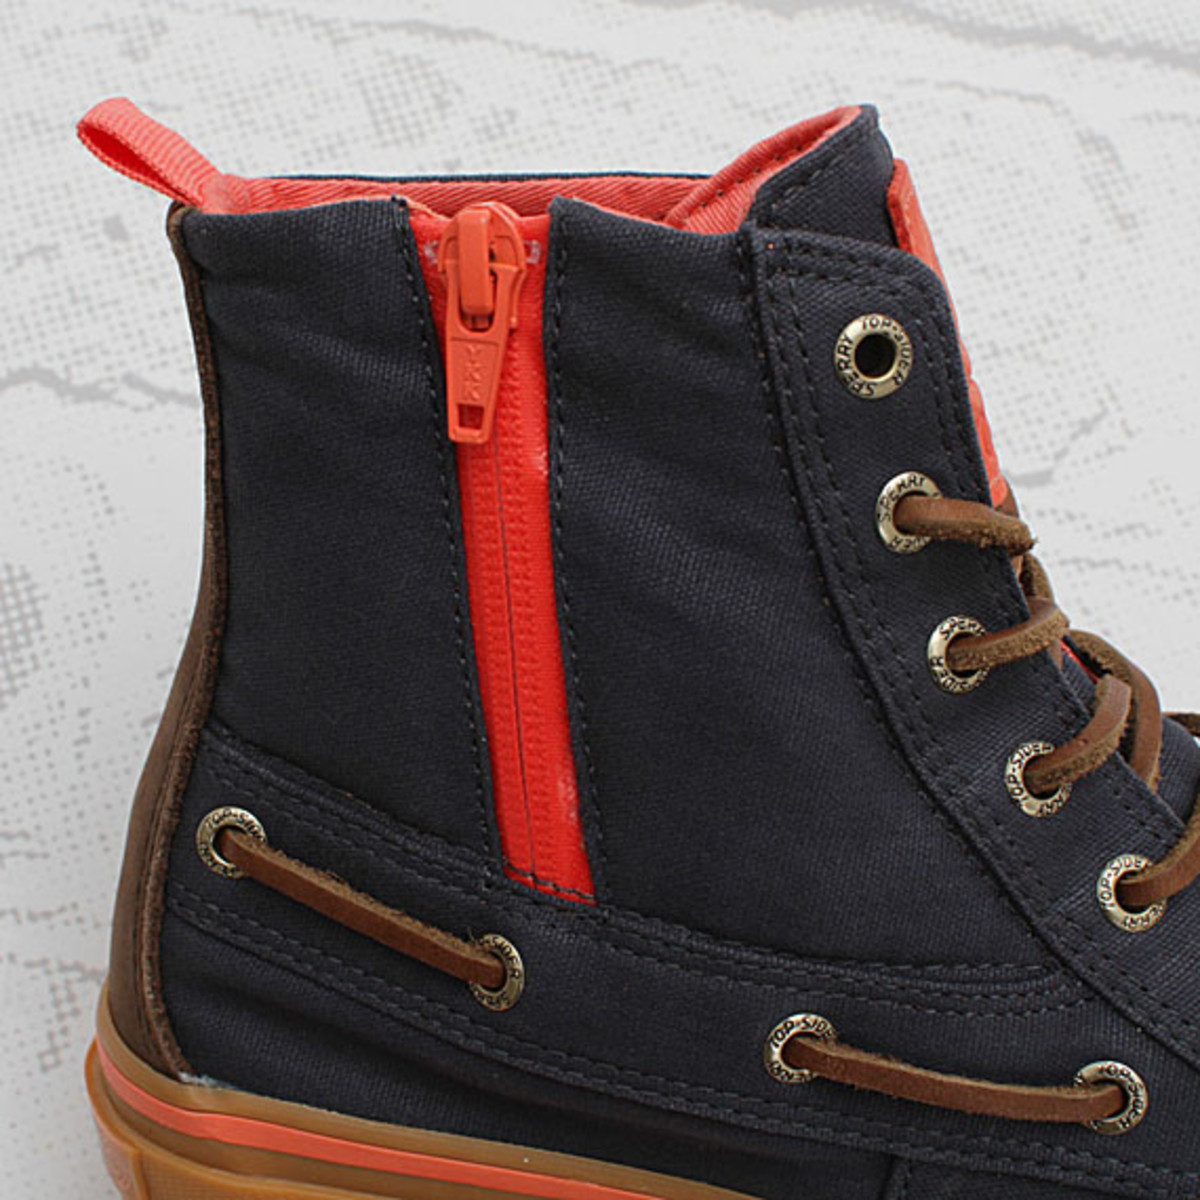 concepts-sperry-top-sider-bahama-boot-fall-2012-19